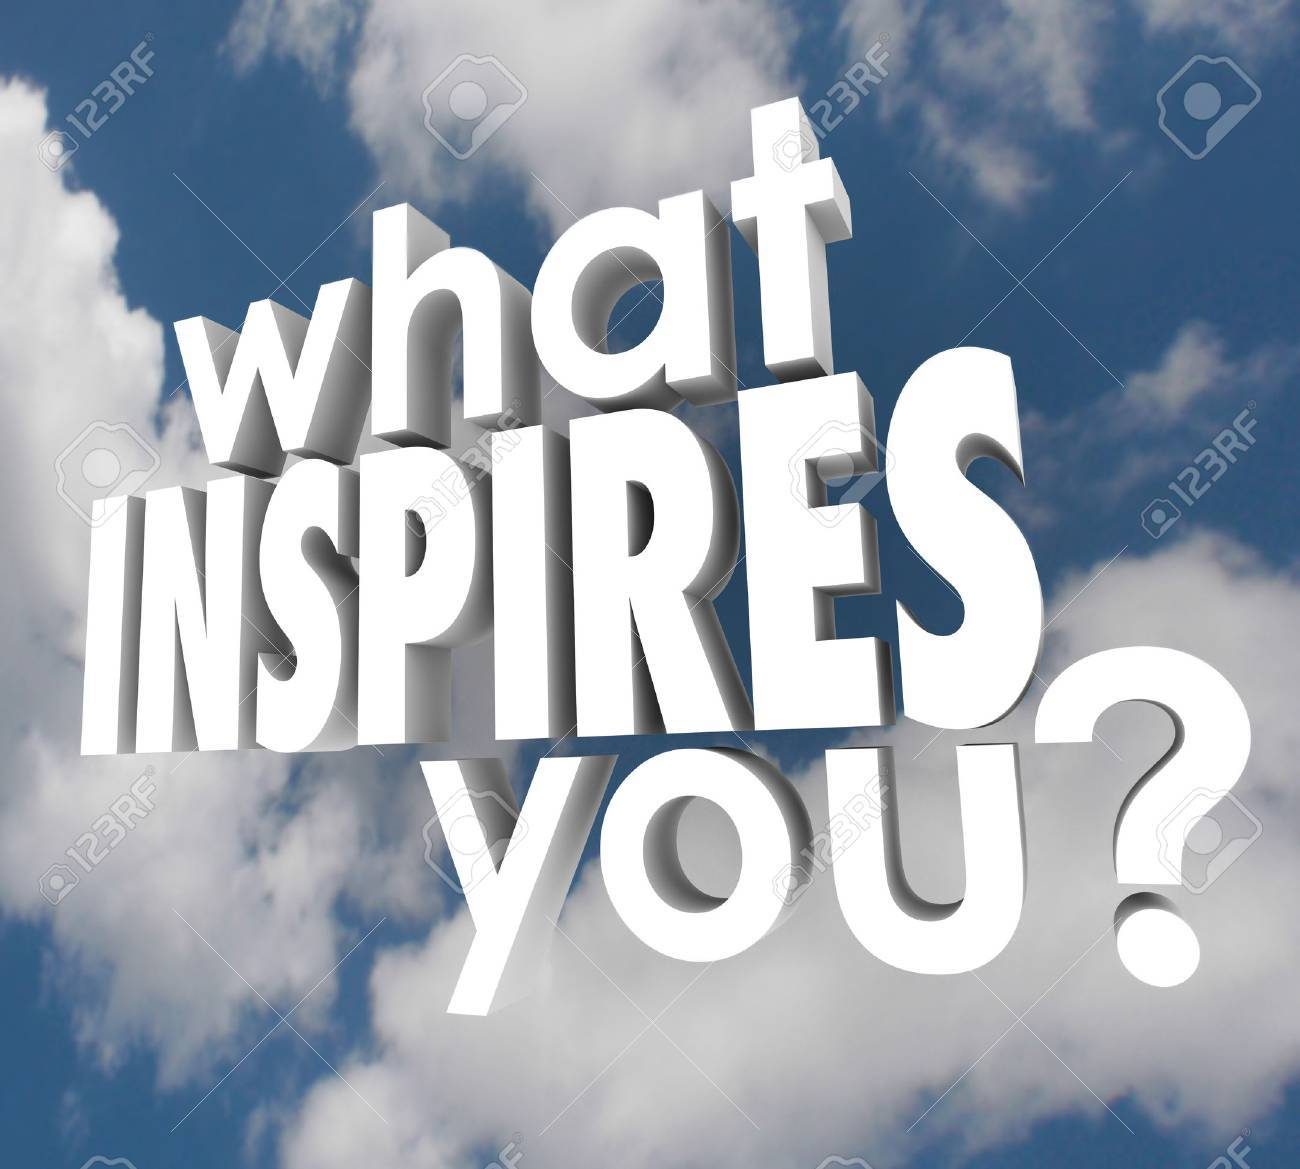 what inspires you words in d letters on a background of clouds stock photo what inspires you words in 3d letters on a background of clouds to ask what motivates you to think creatively use your imagination and